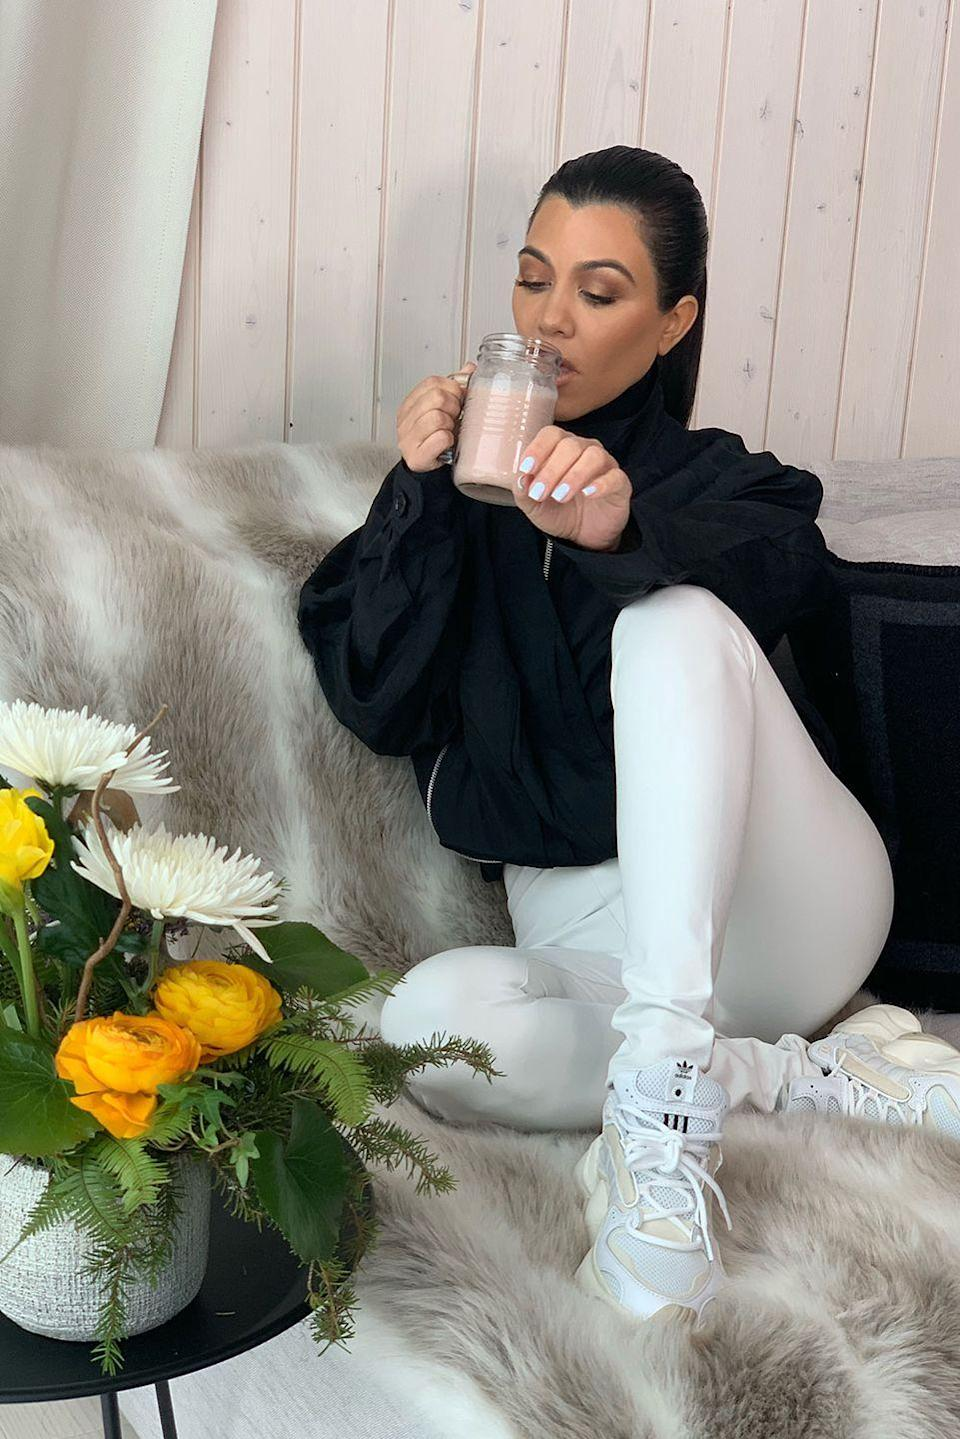 """<p>Kourtney writes on her site, <a href=""""https://poosh.com/kourtney-kardashian-daily-tonics-supplements/"""" rel=""""nofollow noopener"""" target=""""_blank"""" data-ylk=""""slk:Poosh"""" class=""""link rapid-noclick-resp"""">Poosh</a>, that she starts off every day with a cup of <a href=""""https://shop.poosh.com/products/vital-proteins-x-poosh-blueberry-lemon-collagen-vibes"""" rel=""""nofollow noopener"""" target=""""_blank"""" data-ylk=""""slk:Collagen Vibes"""" class=""""link rapid-noclick-resp"""">Collagen Vibes</a>, which contains protein, vitamin C, and is also super nourishing for your hair and nails. </p>"""